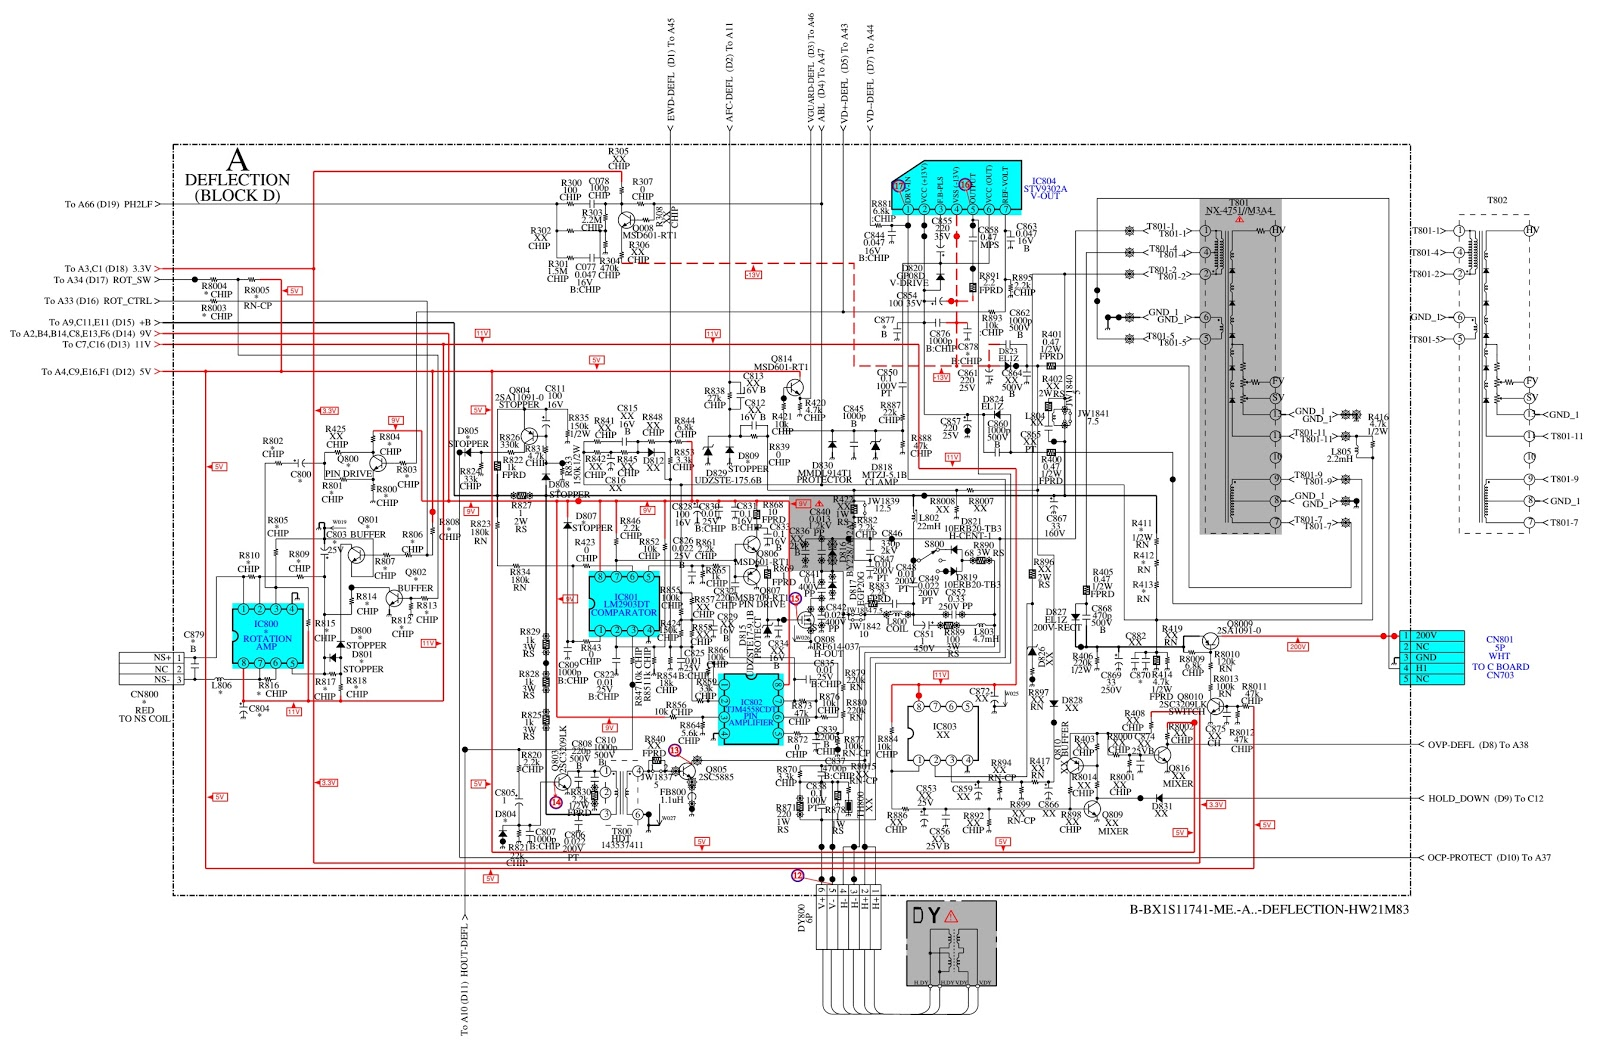 hight resolution of g21 wiring diagram manual e book kubota g21 wiring diagram g21 wiring diagram